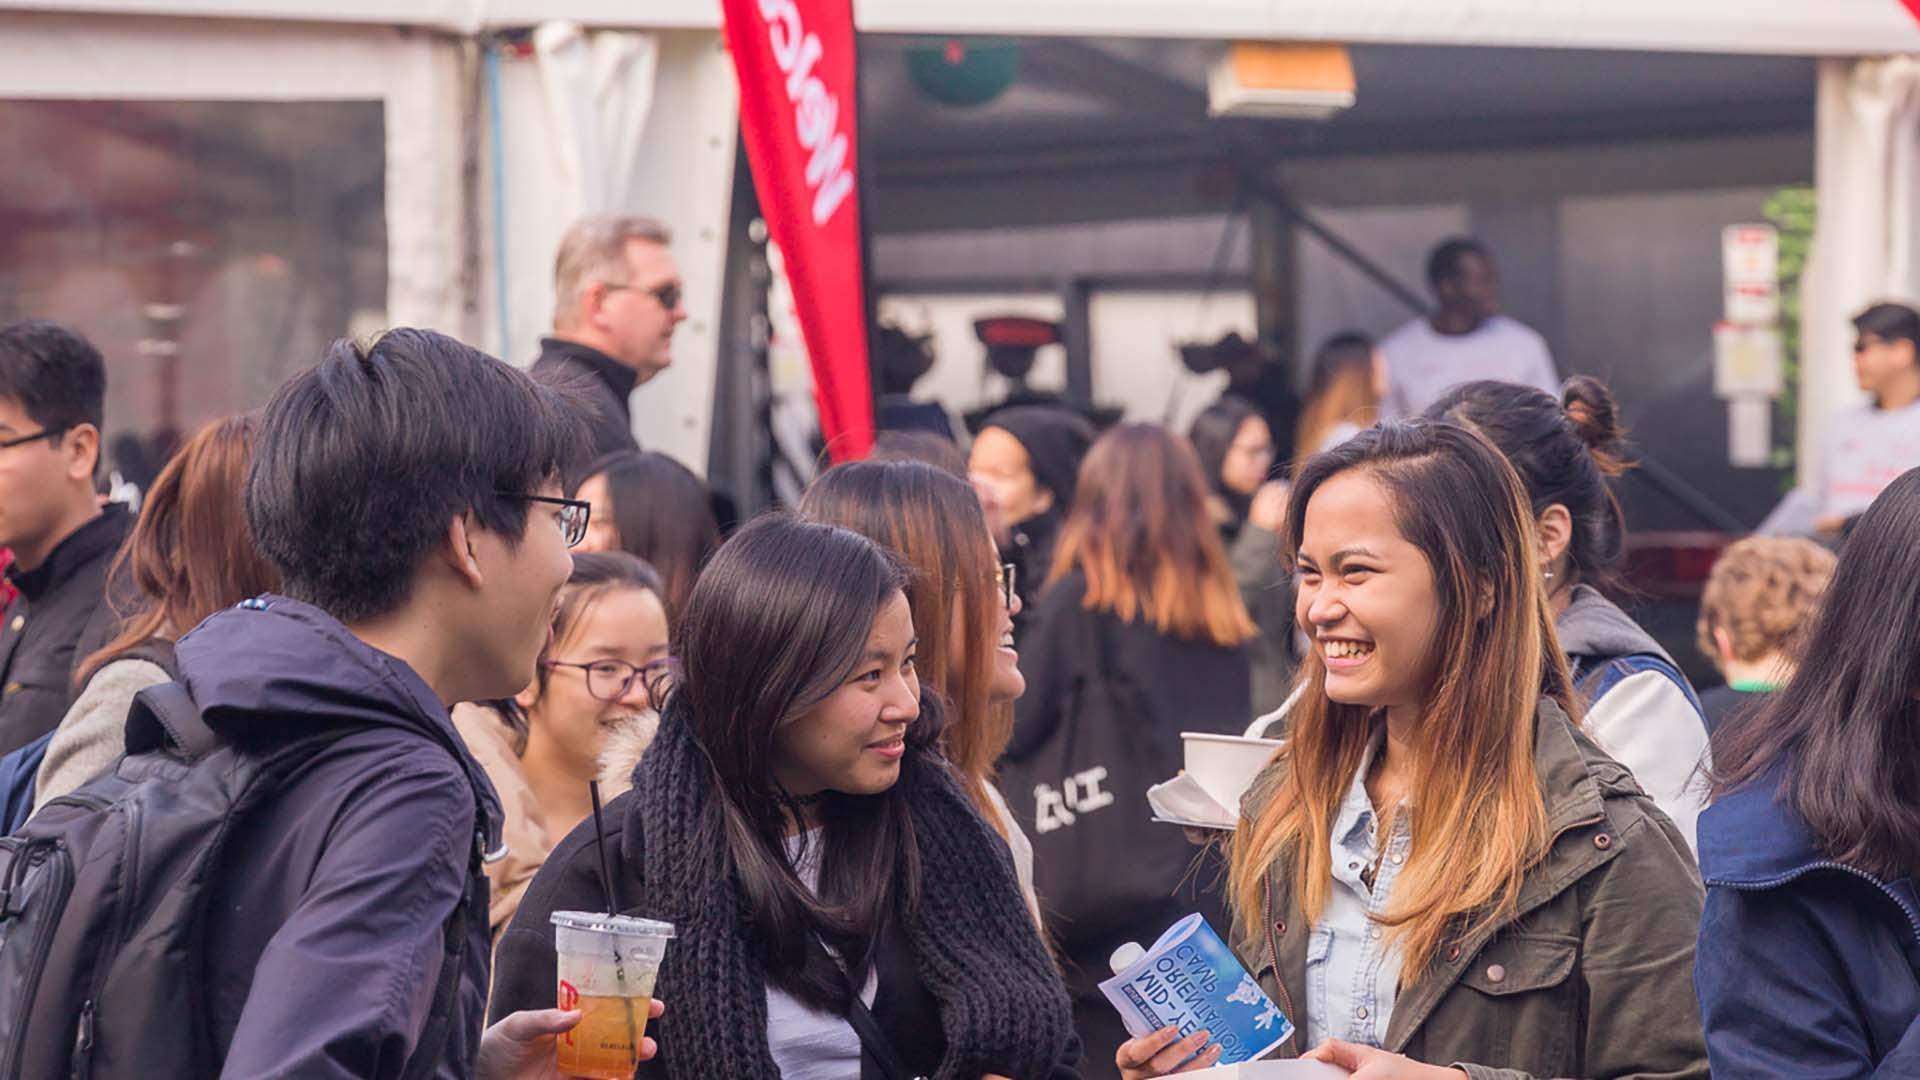 Group of international students talking to each other at Open Day event